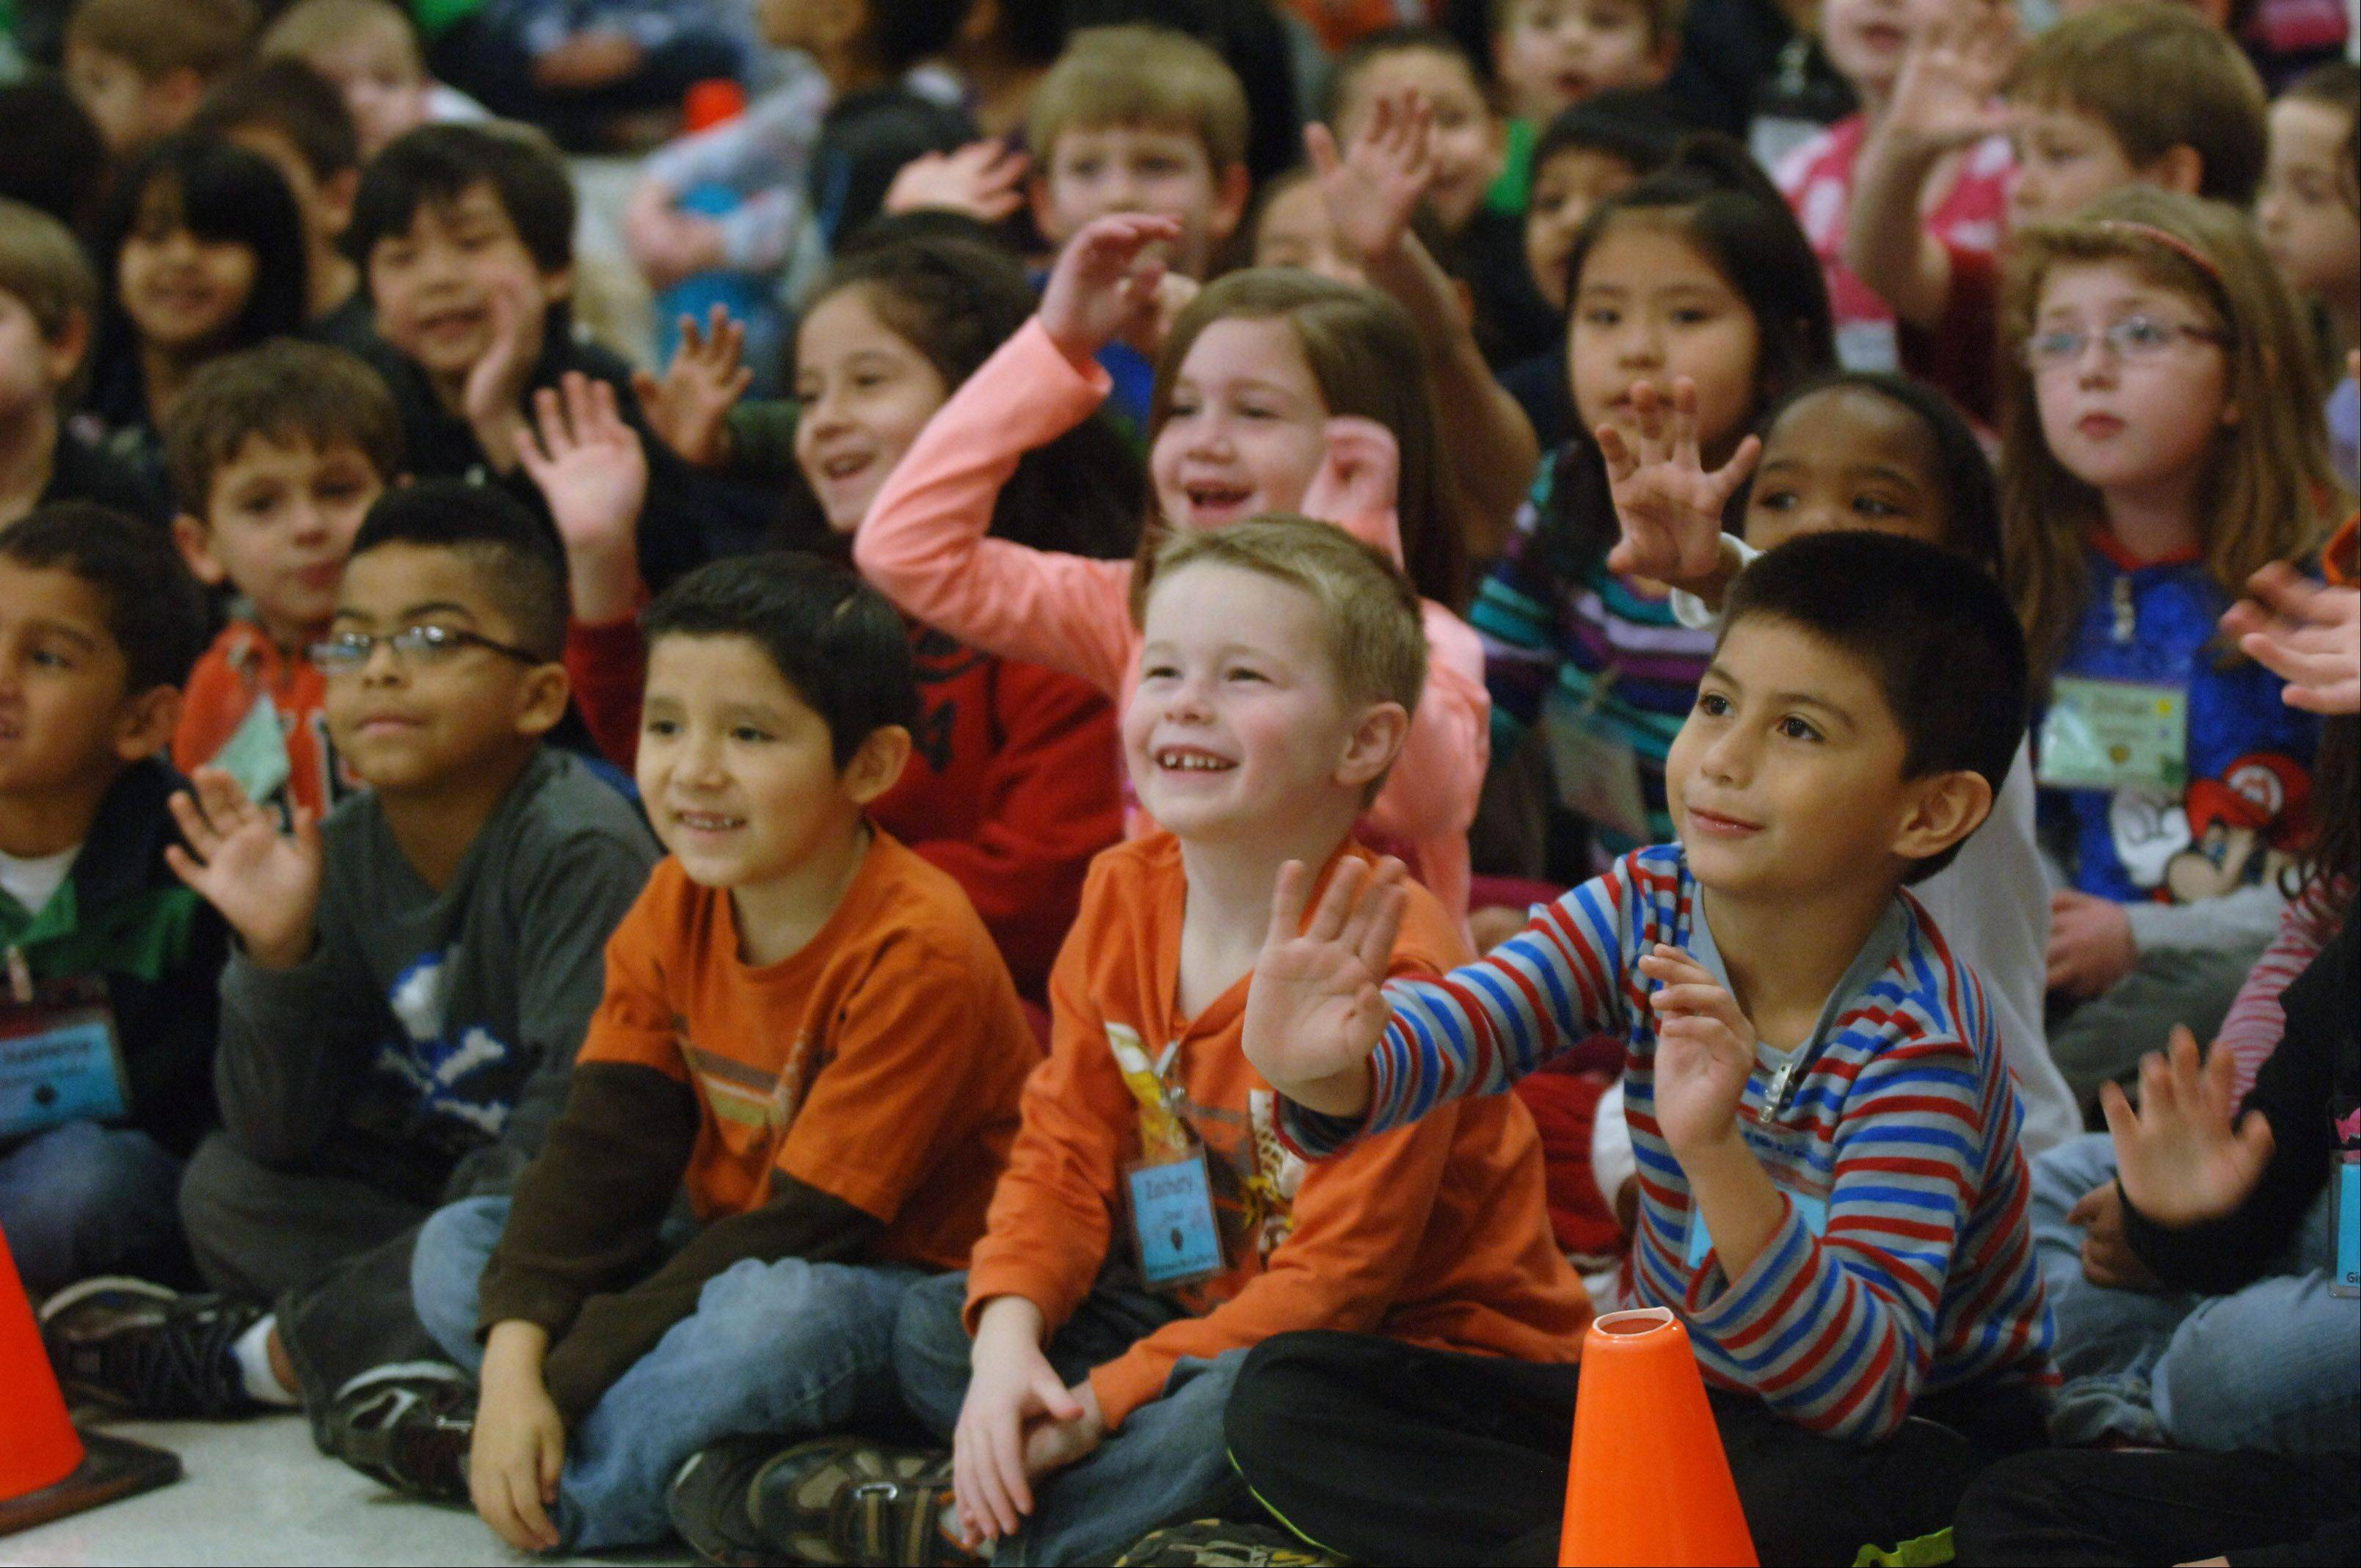 Woodland Primary School's kindergarten students in Gages Lake watch the Jumpers on Fire team from Loves Park.